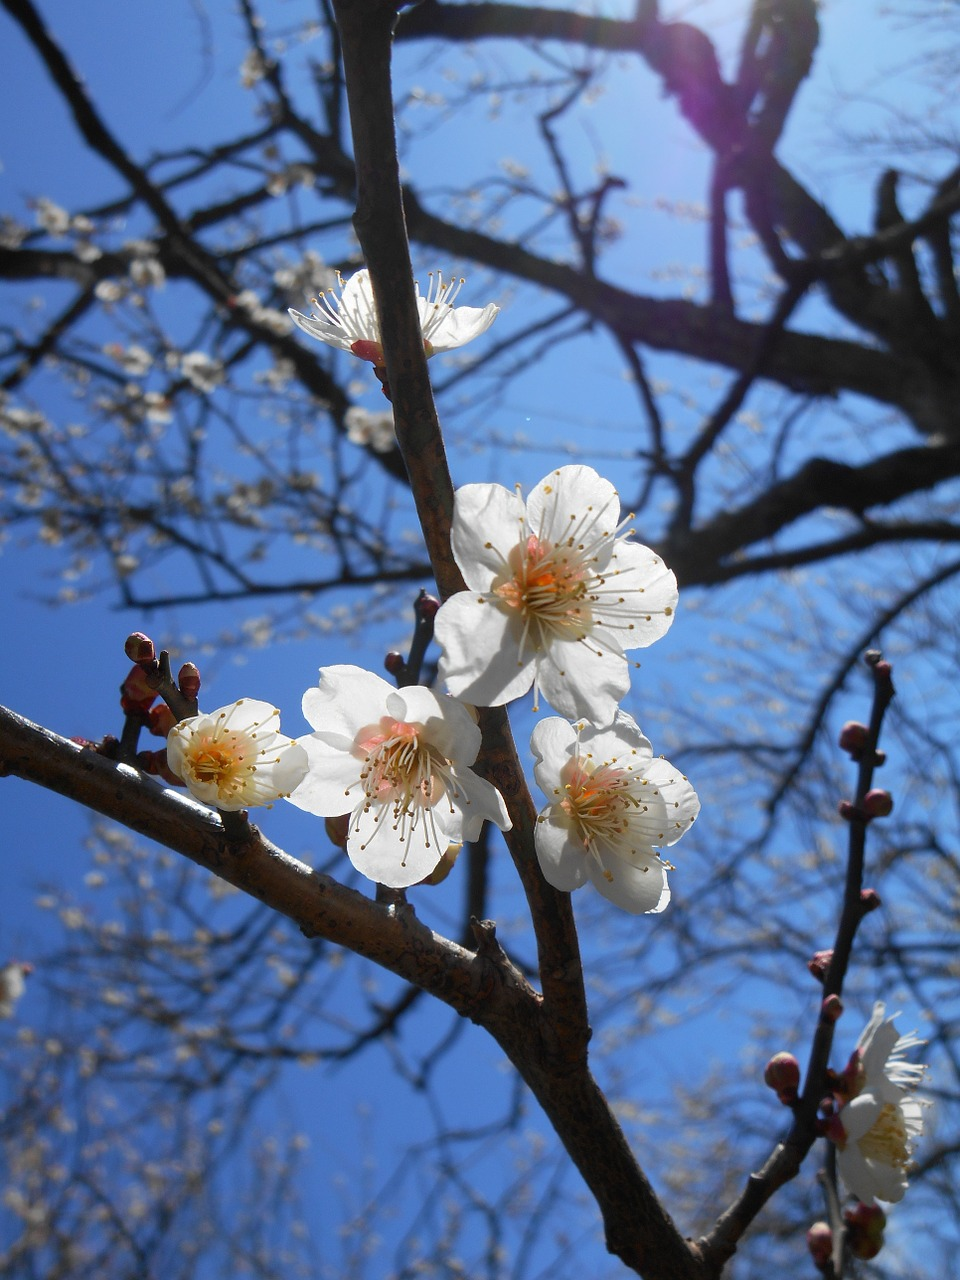 Plumwhite plum blossomsflowers of early springwhite plumflowers plum white plum blossoms flowers of early spring mightylinksfo